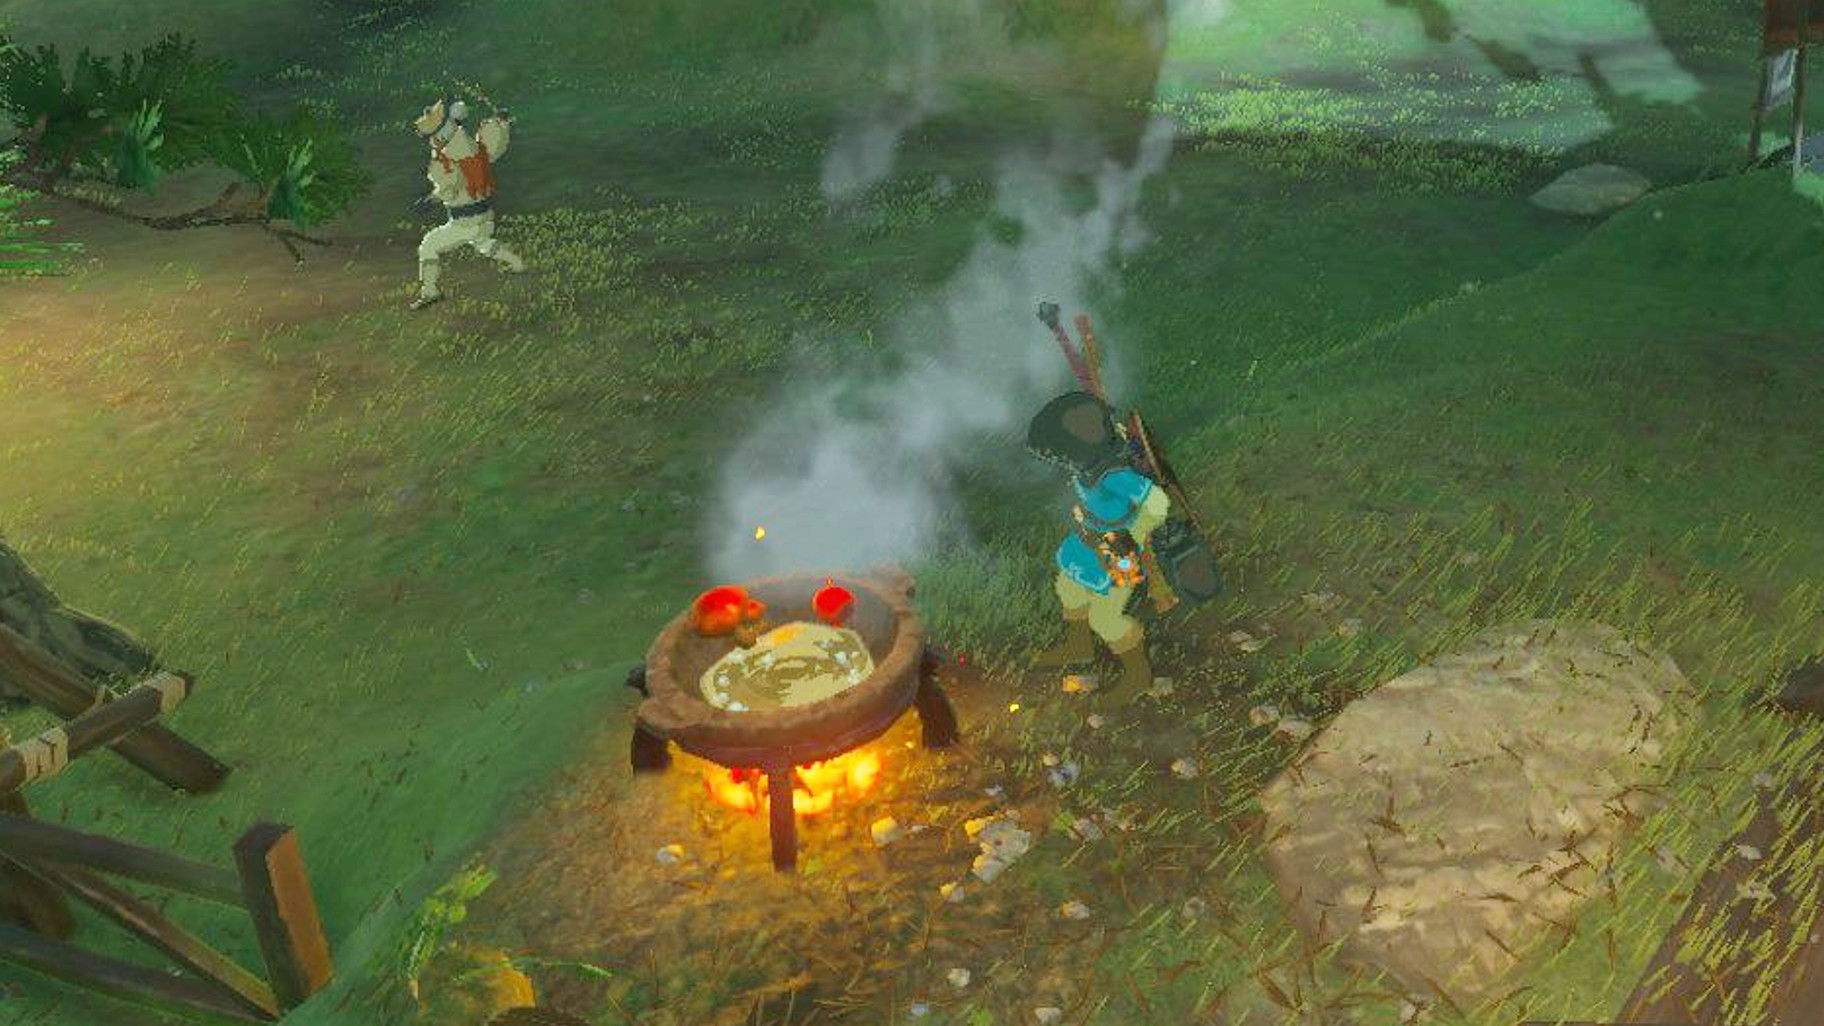 zelda breath of the wild rezept für wintermantel